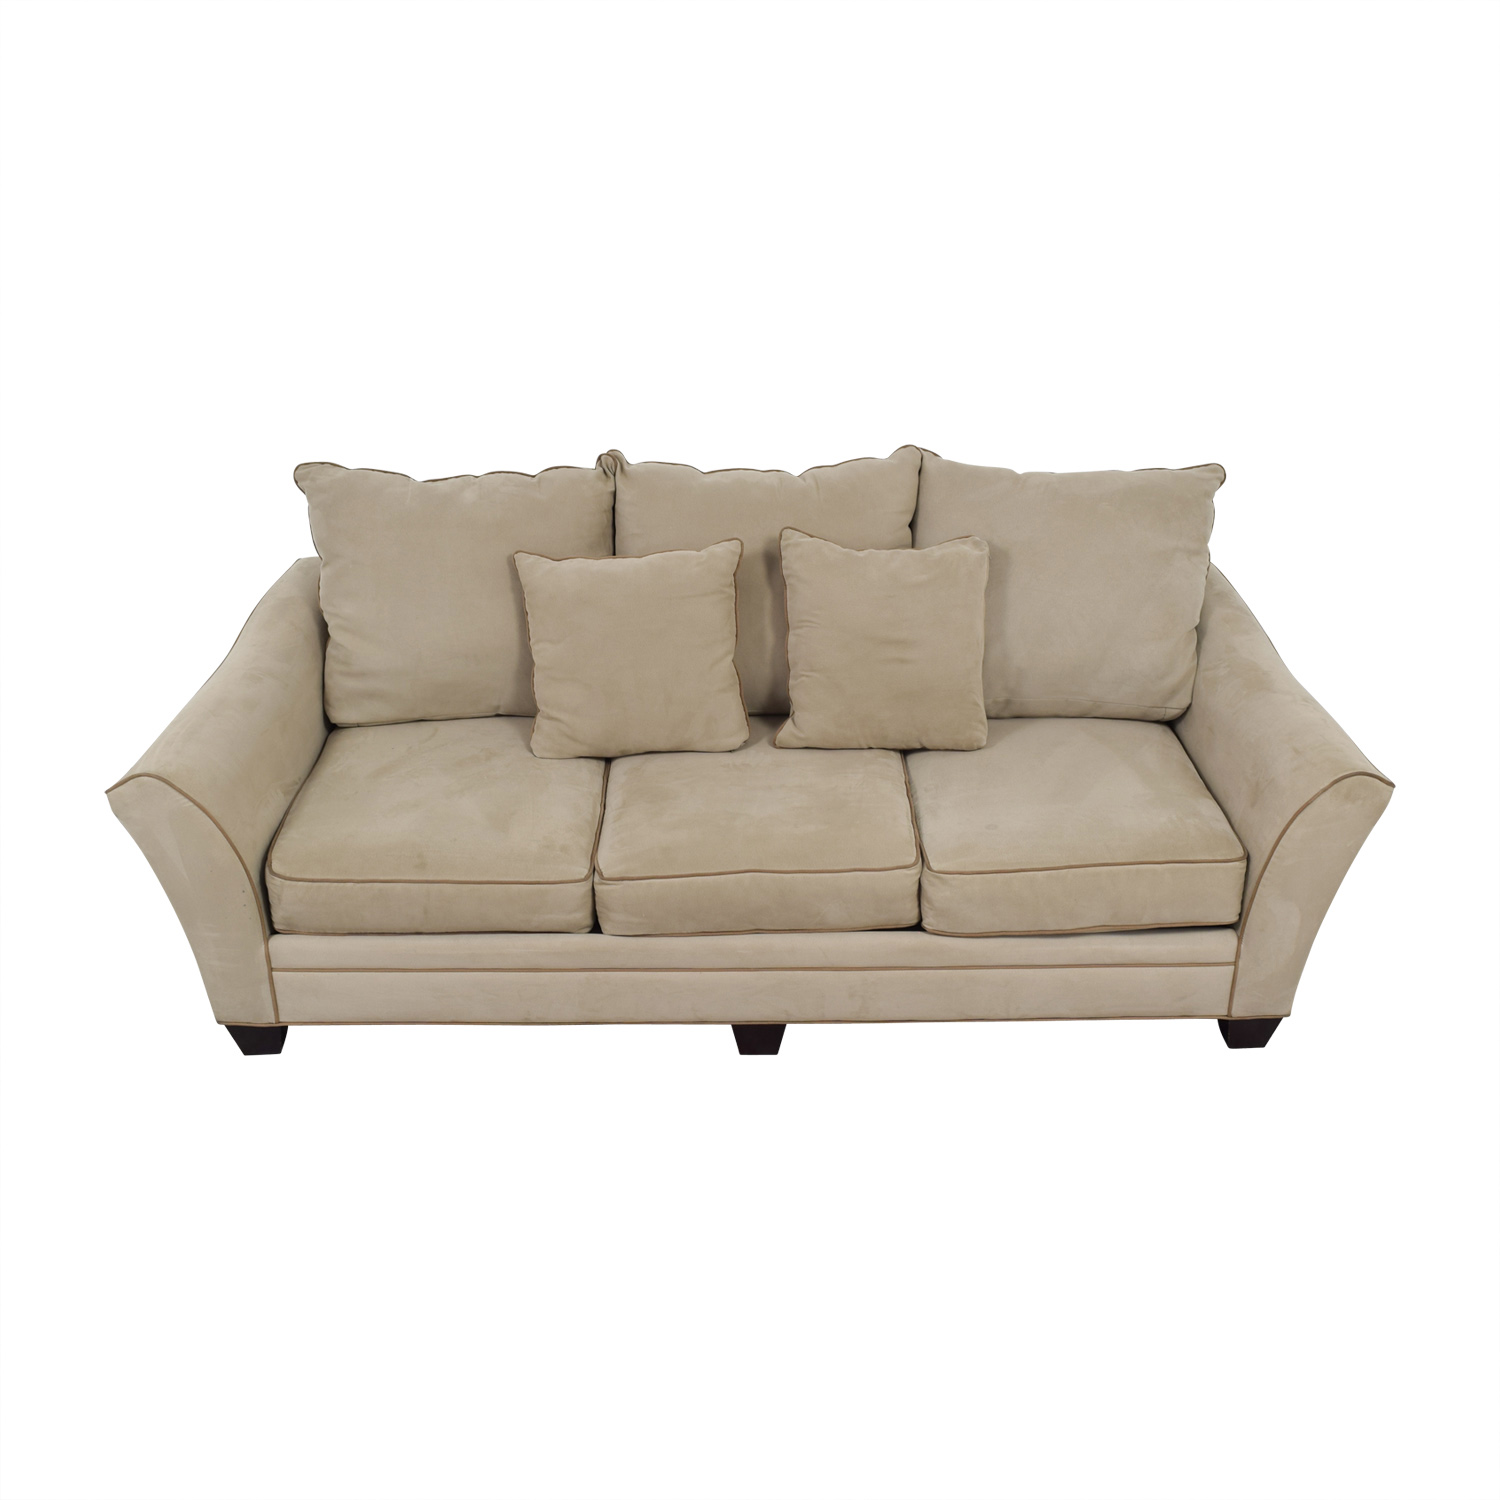 Raymour & Flanigan Raymour & Flanigan Beige Microfiber Three-Cushion Sofa price